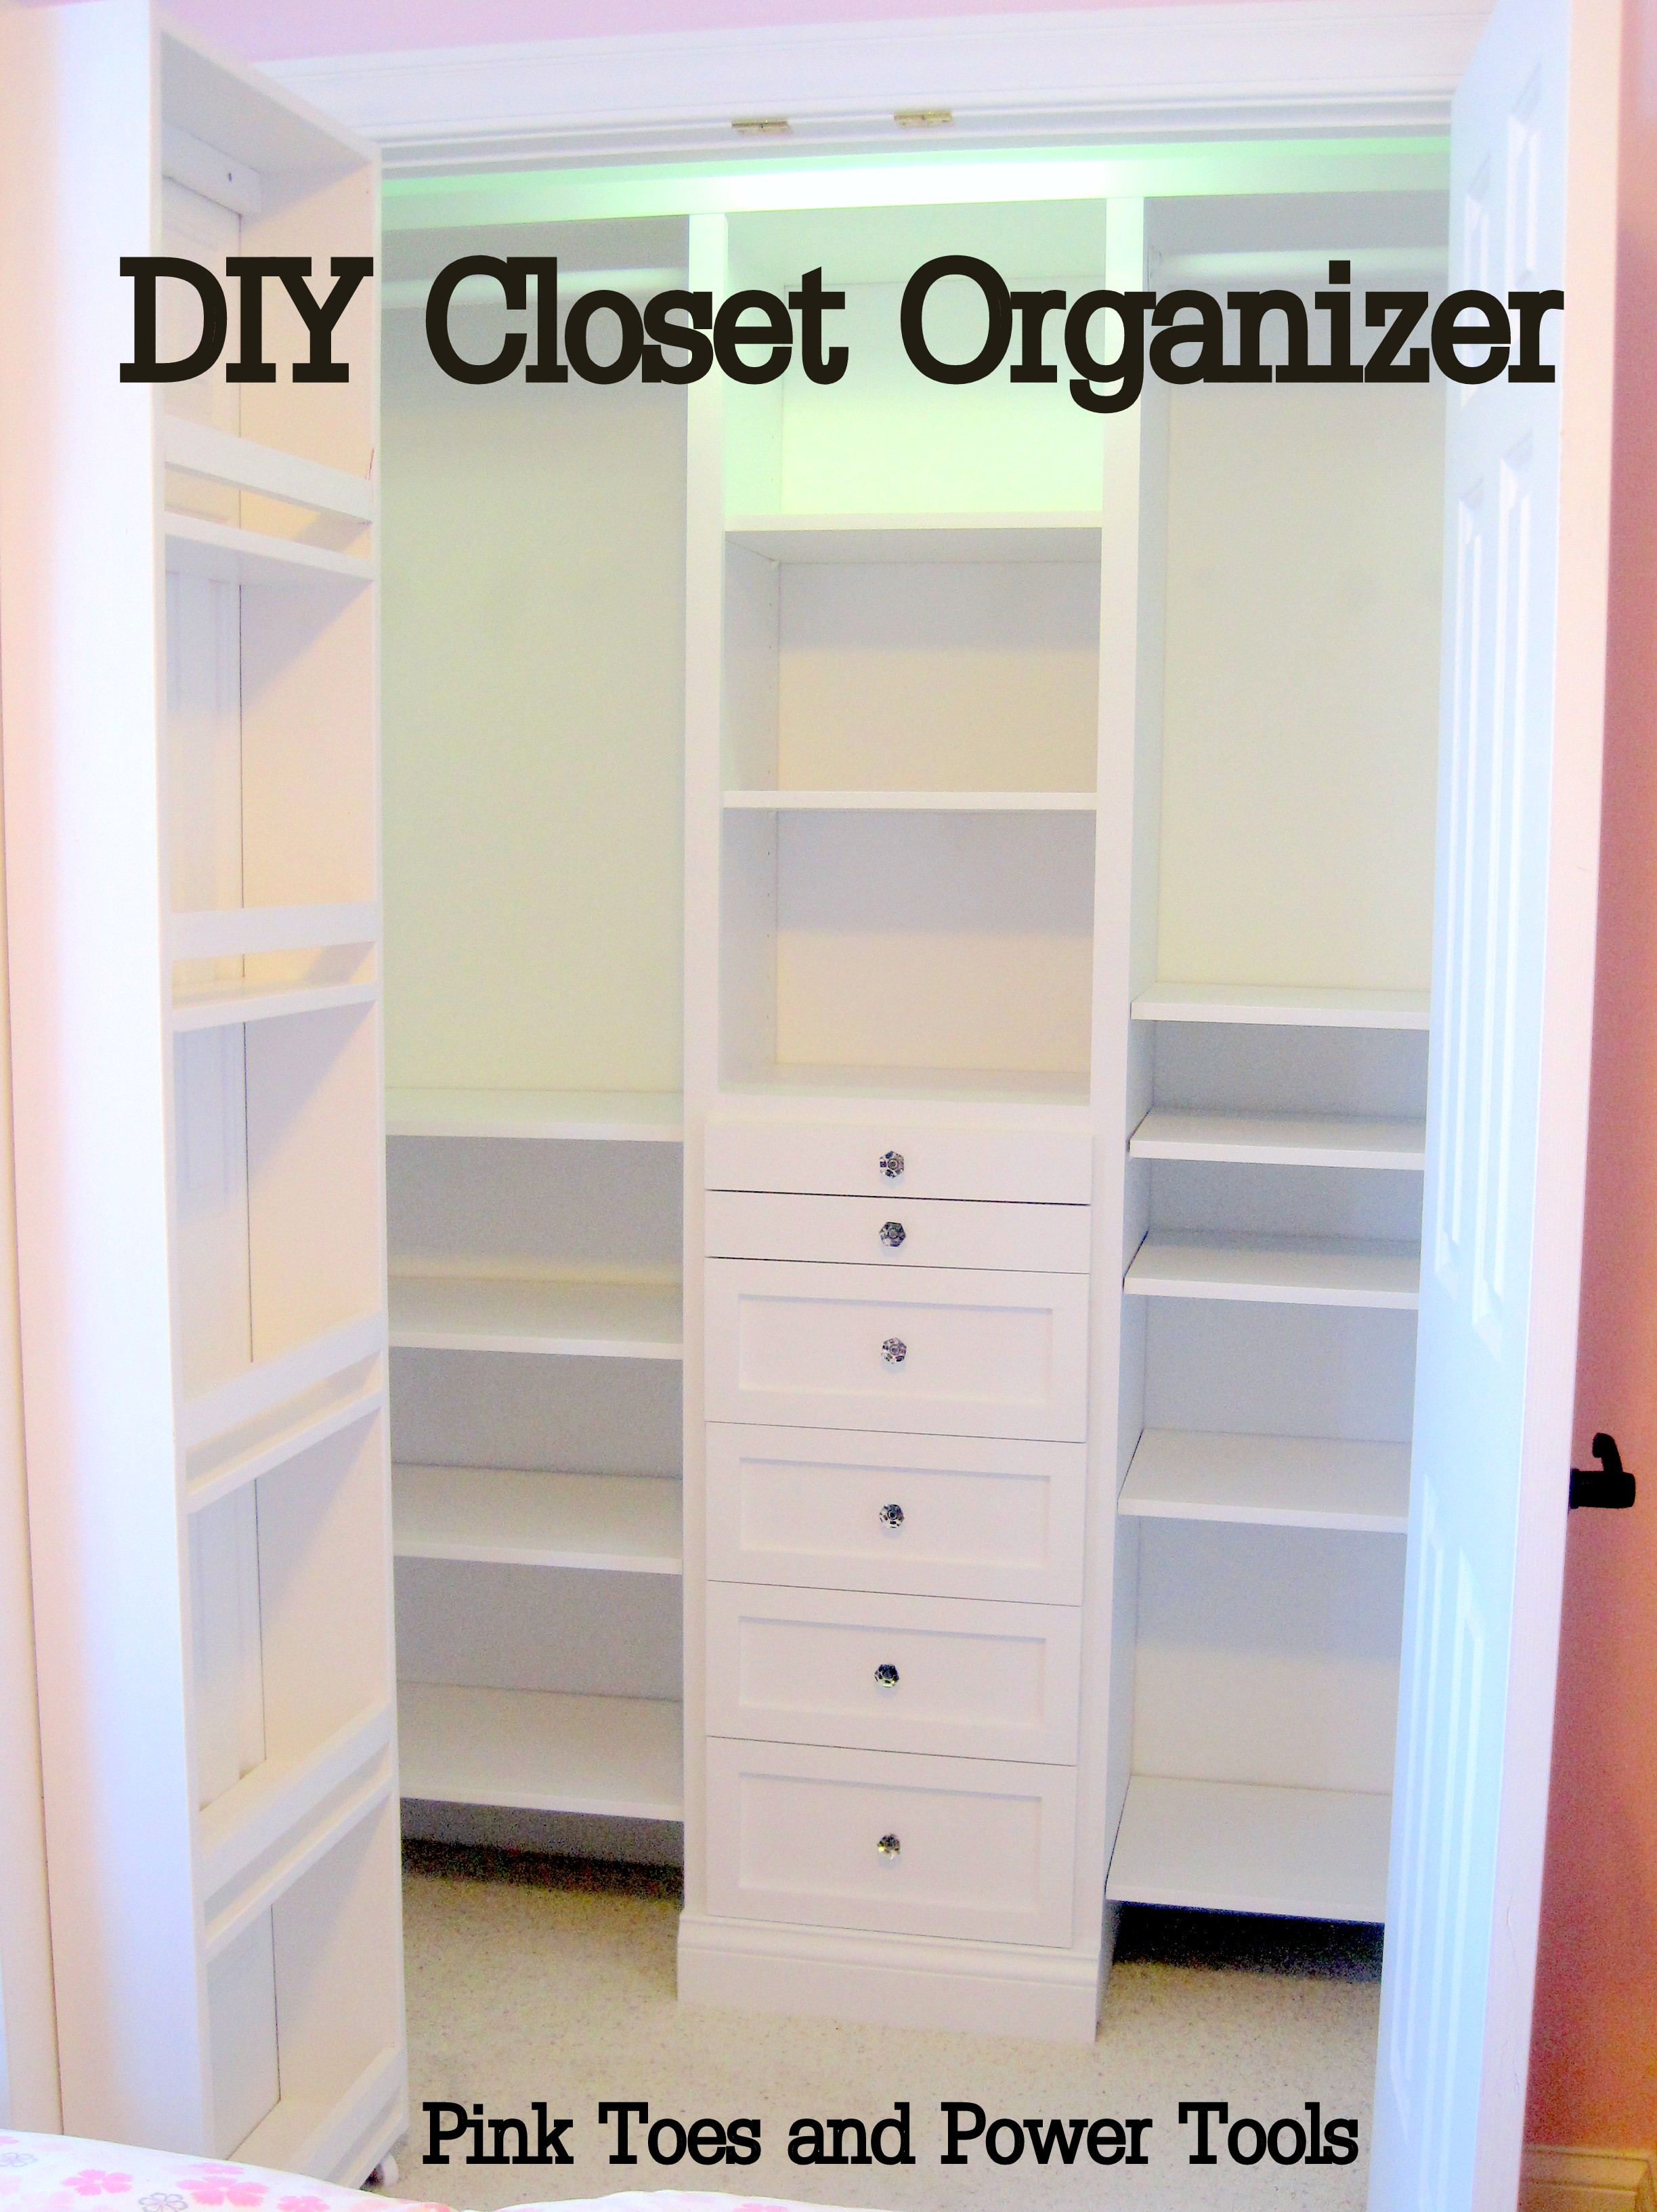 Closet Planner for Best Storage System Ideas: Closet Organizers Images | Closet Planner | Rubbermaid Closet Planner